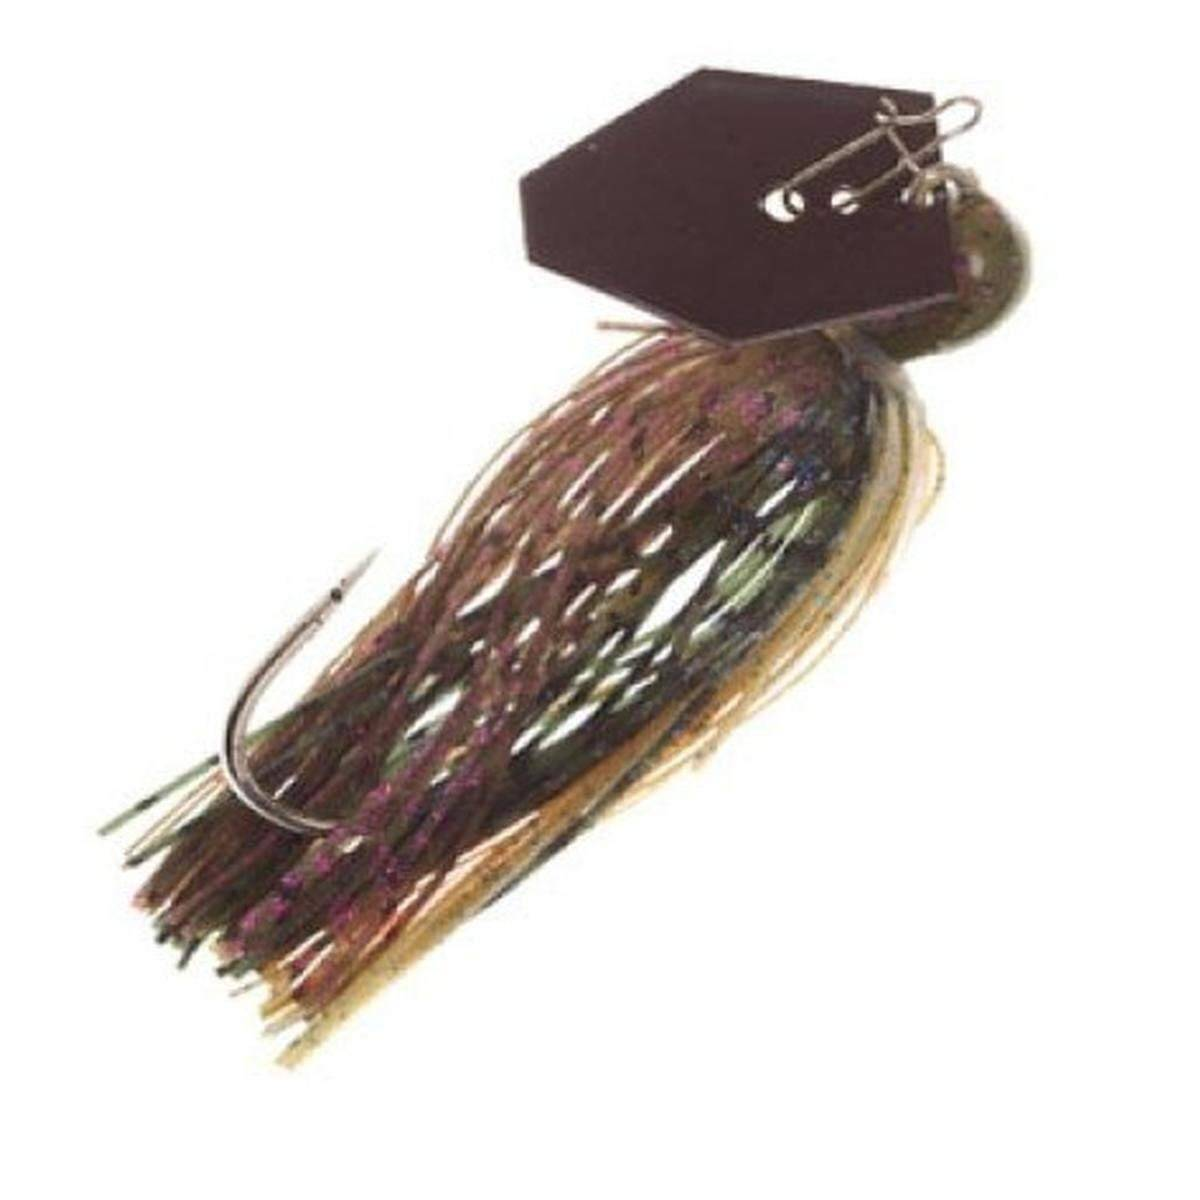 Z-Man Lures Chatterbait Elite Series